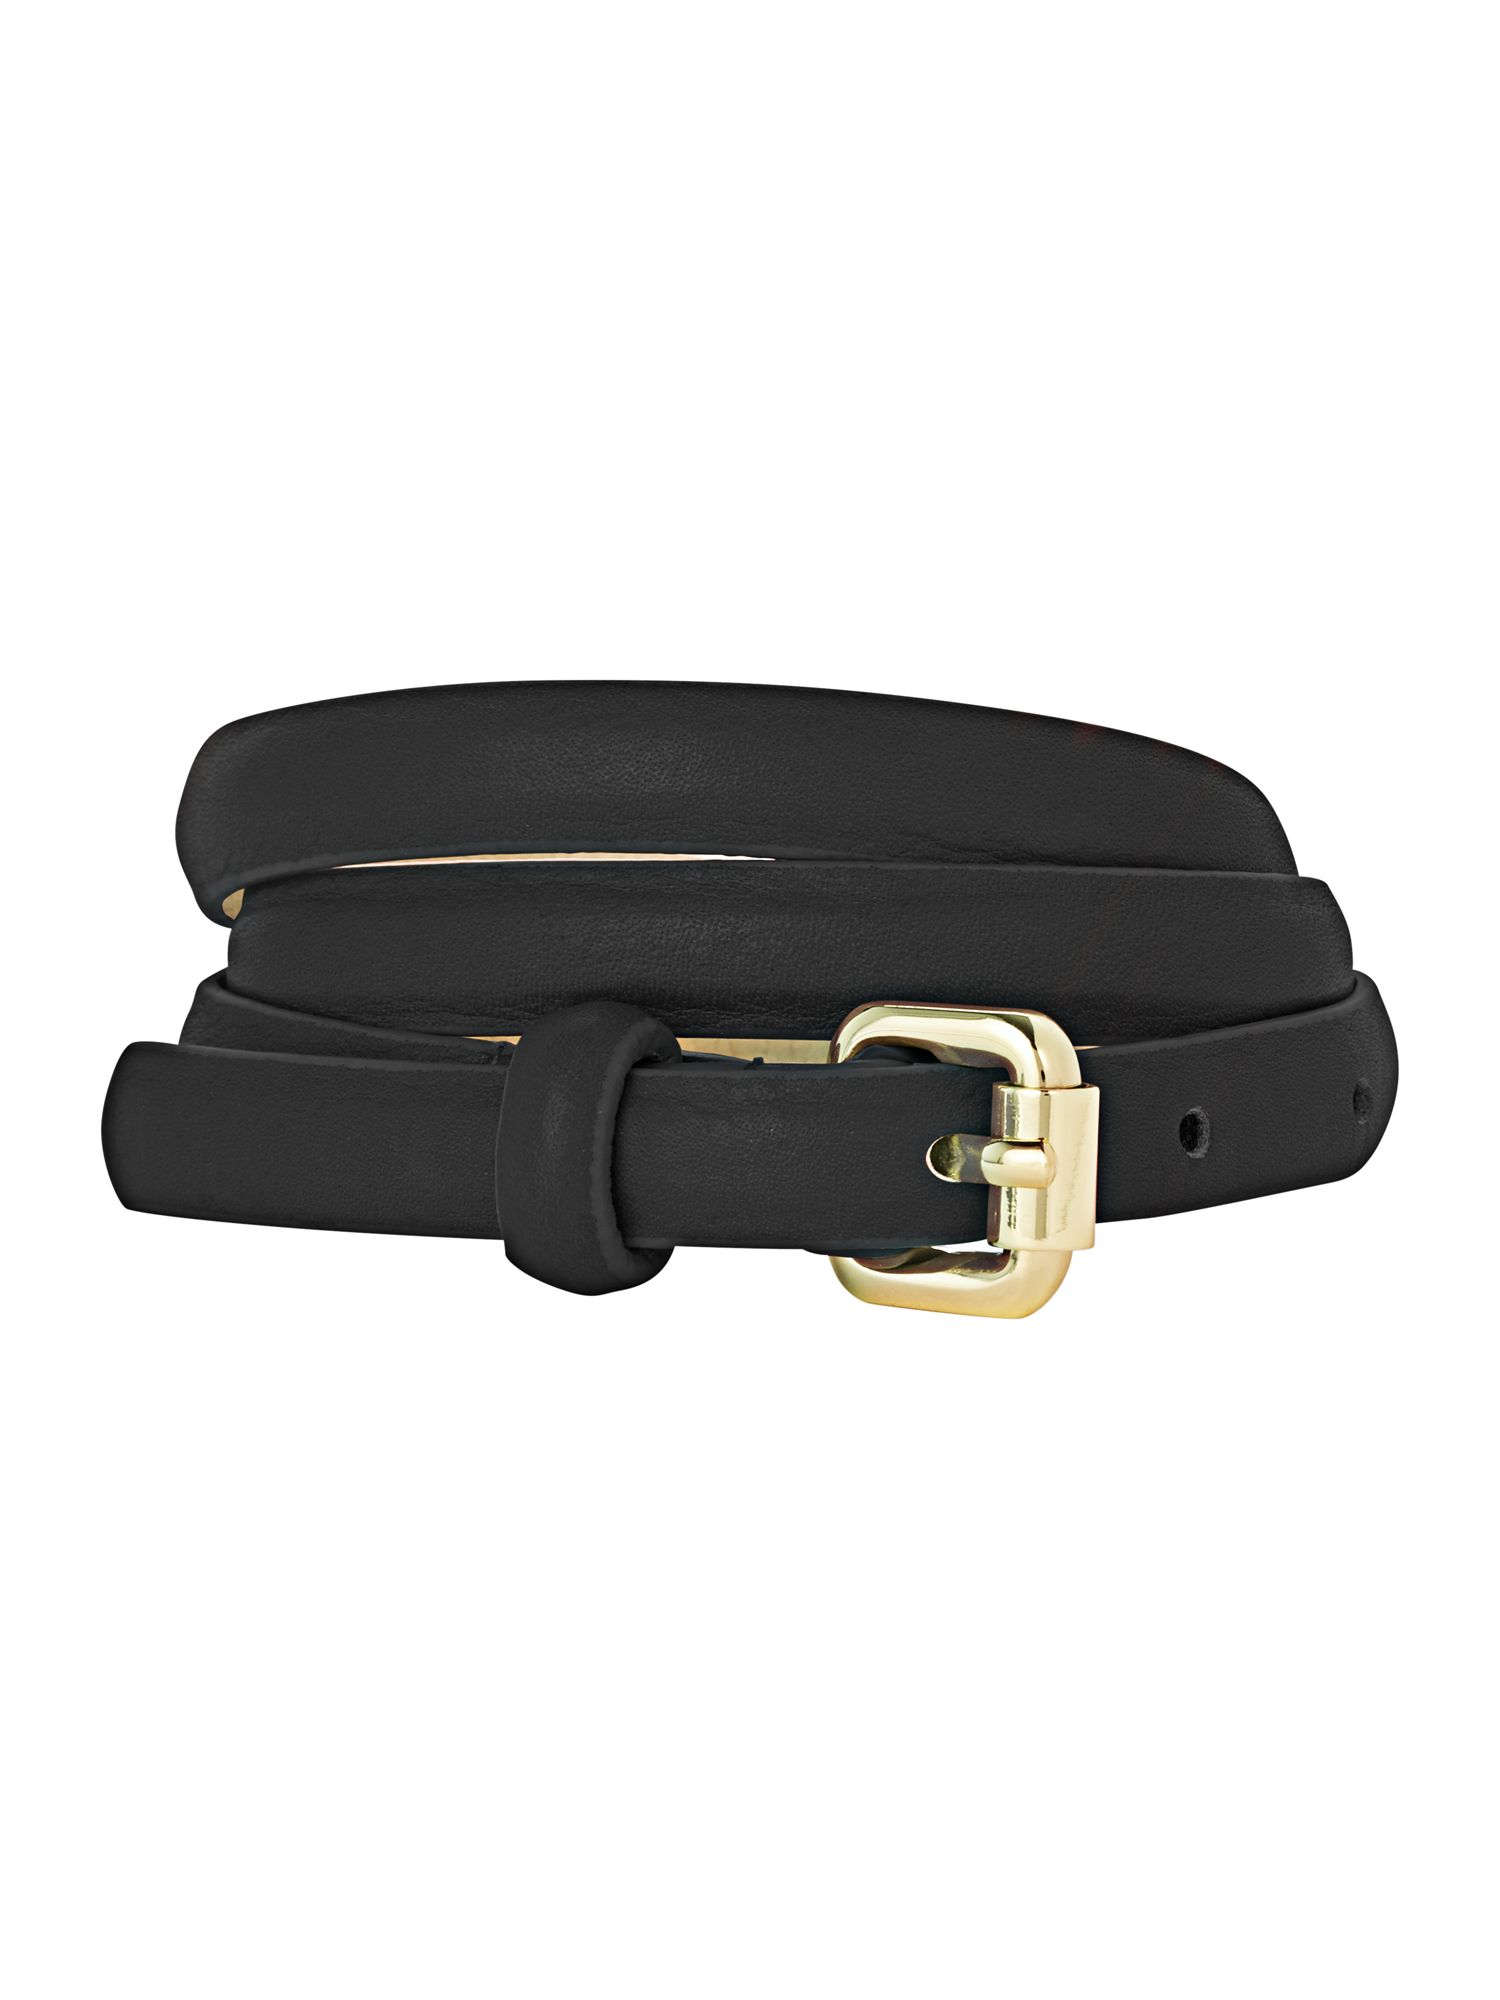 Skinny Leather Trouser Belt